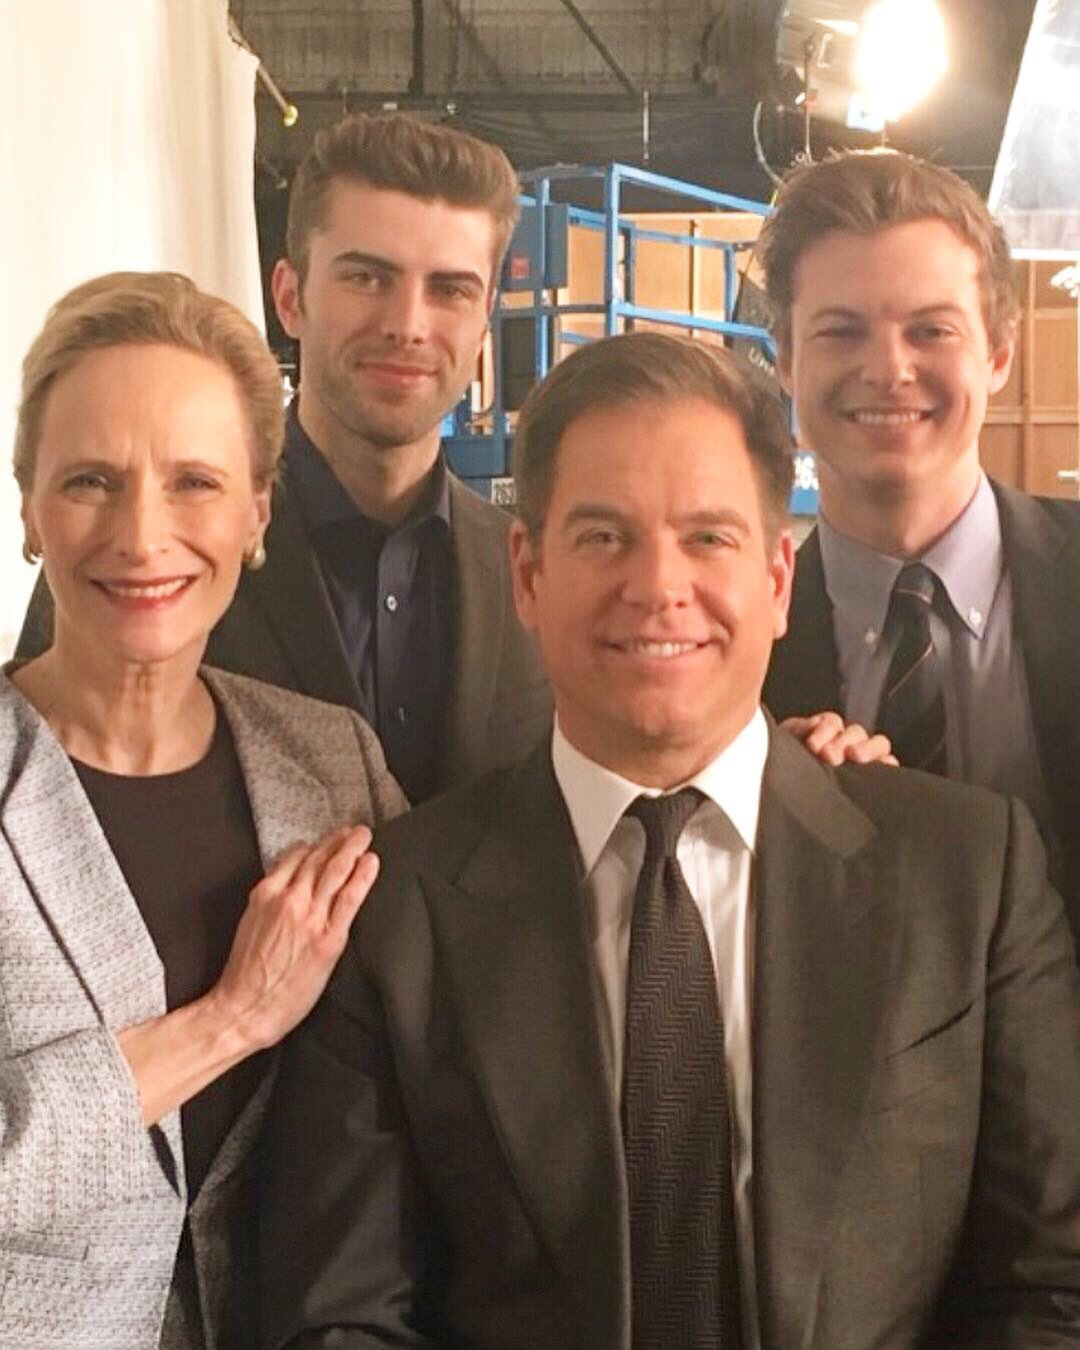 Behind The Scenes with the stars of BULL with Michael Weatherly Courtesy of CBS